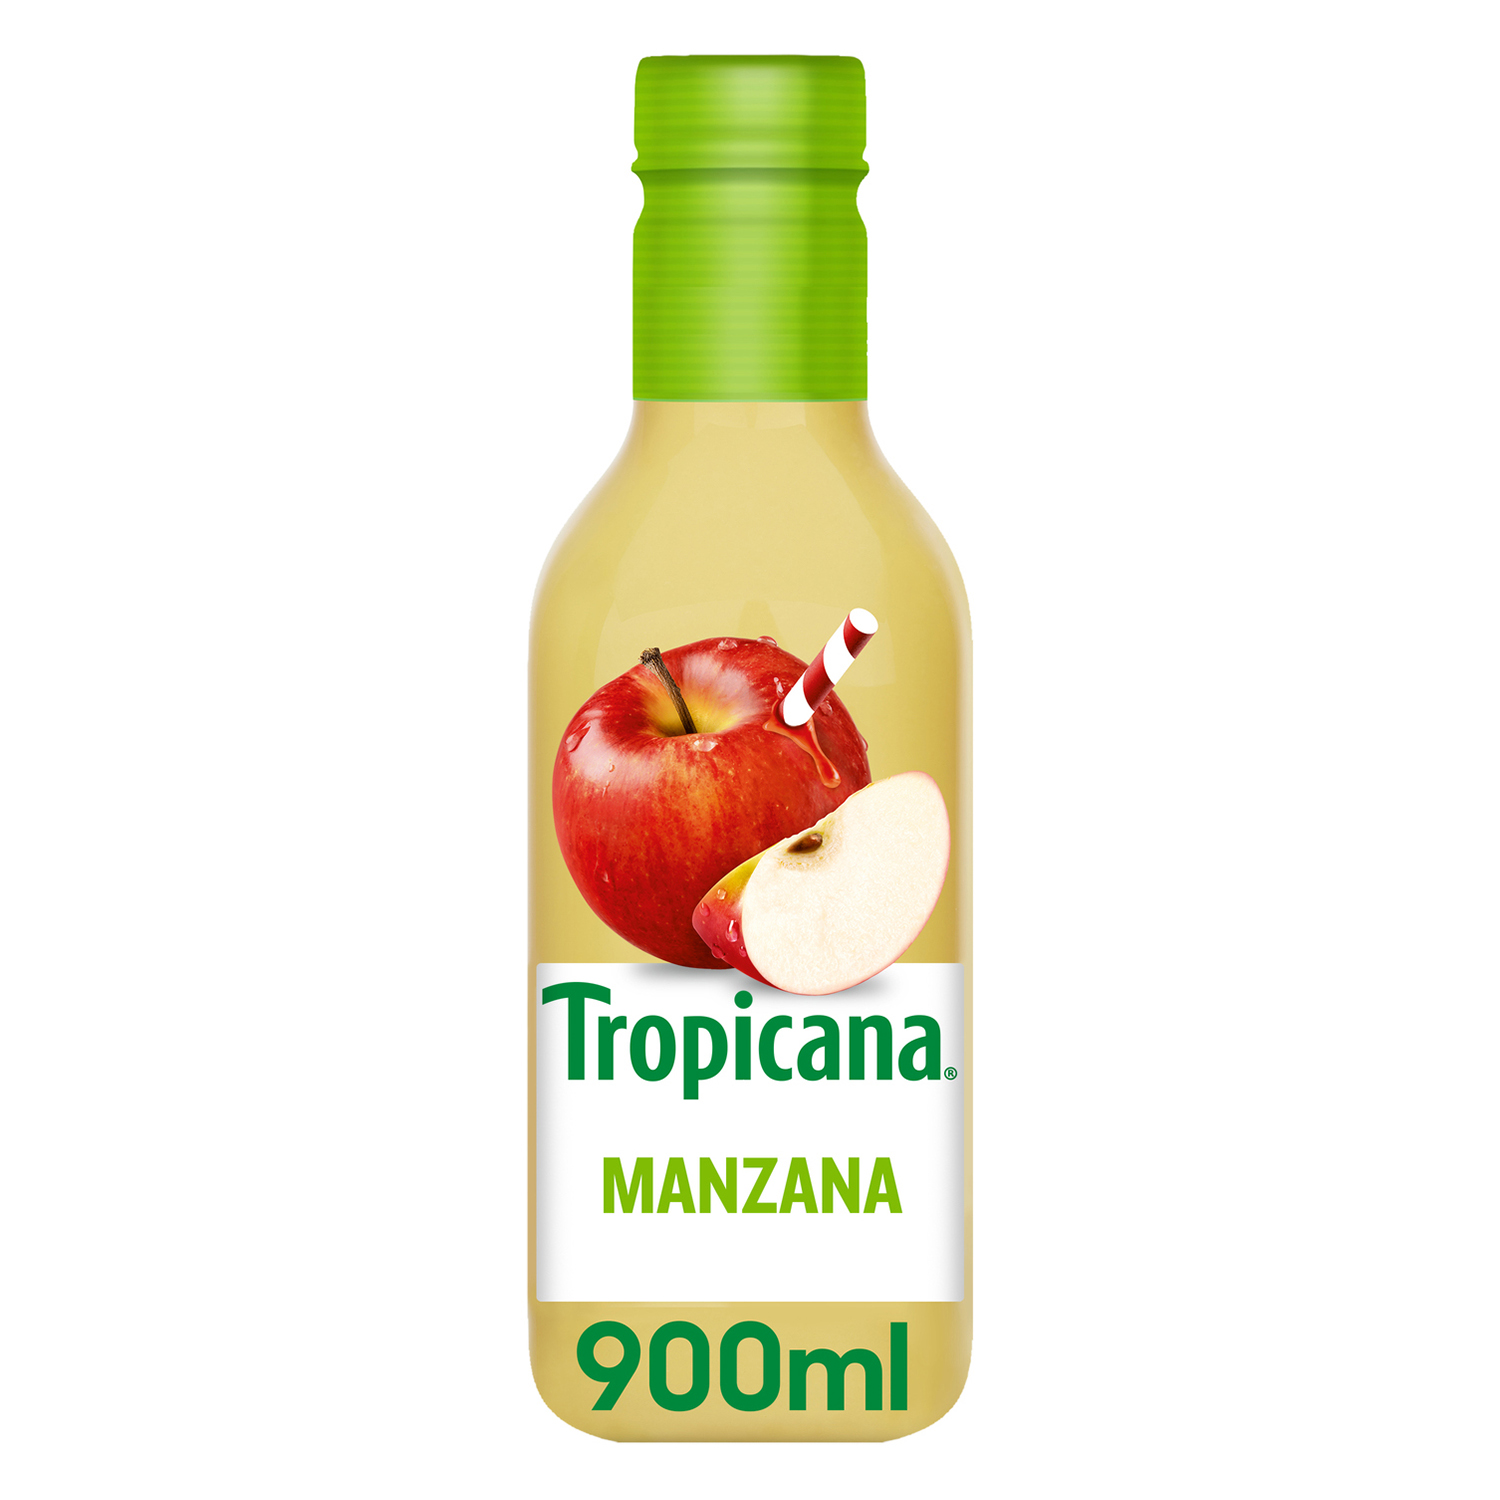 Zumo de manzana Tropicana botella 900 ml.